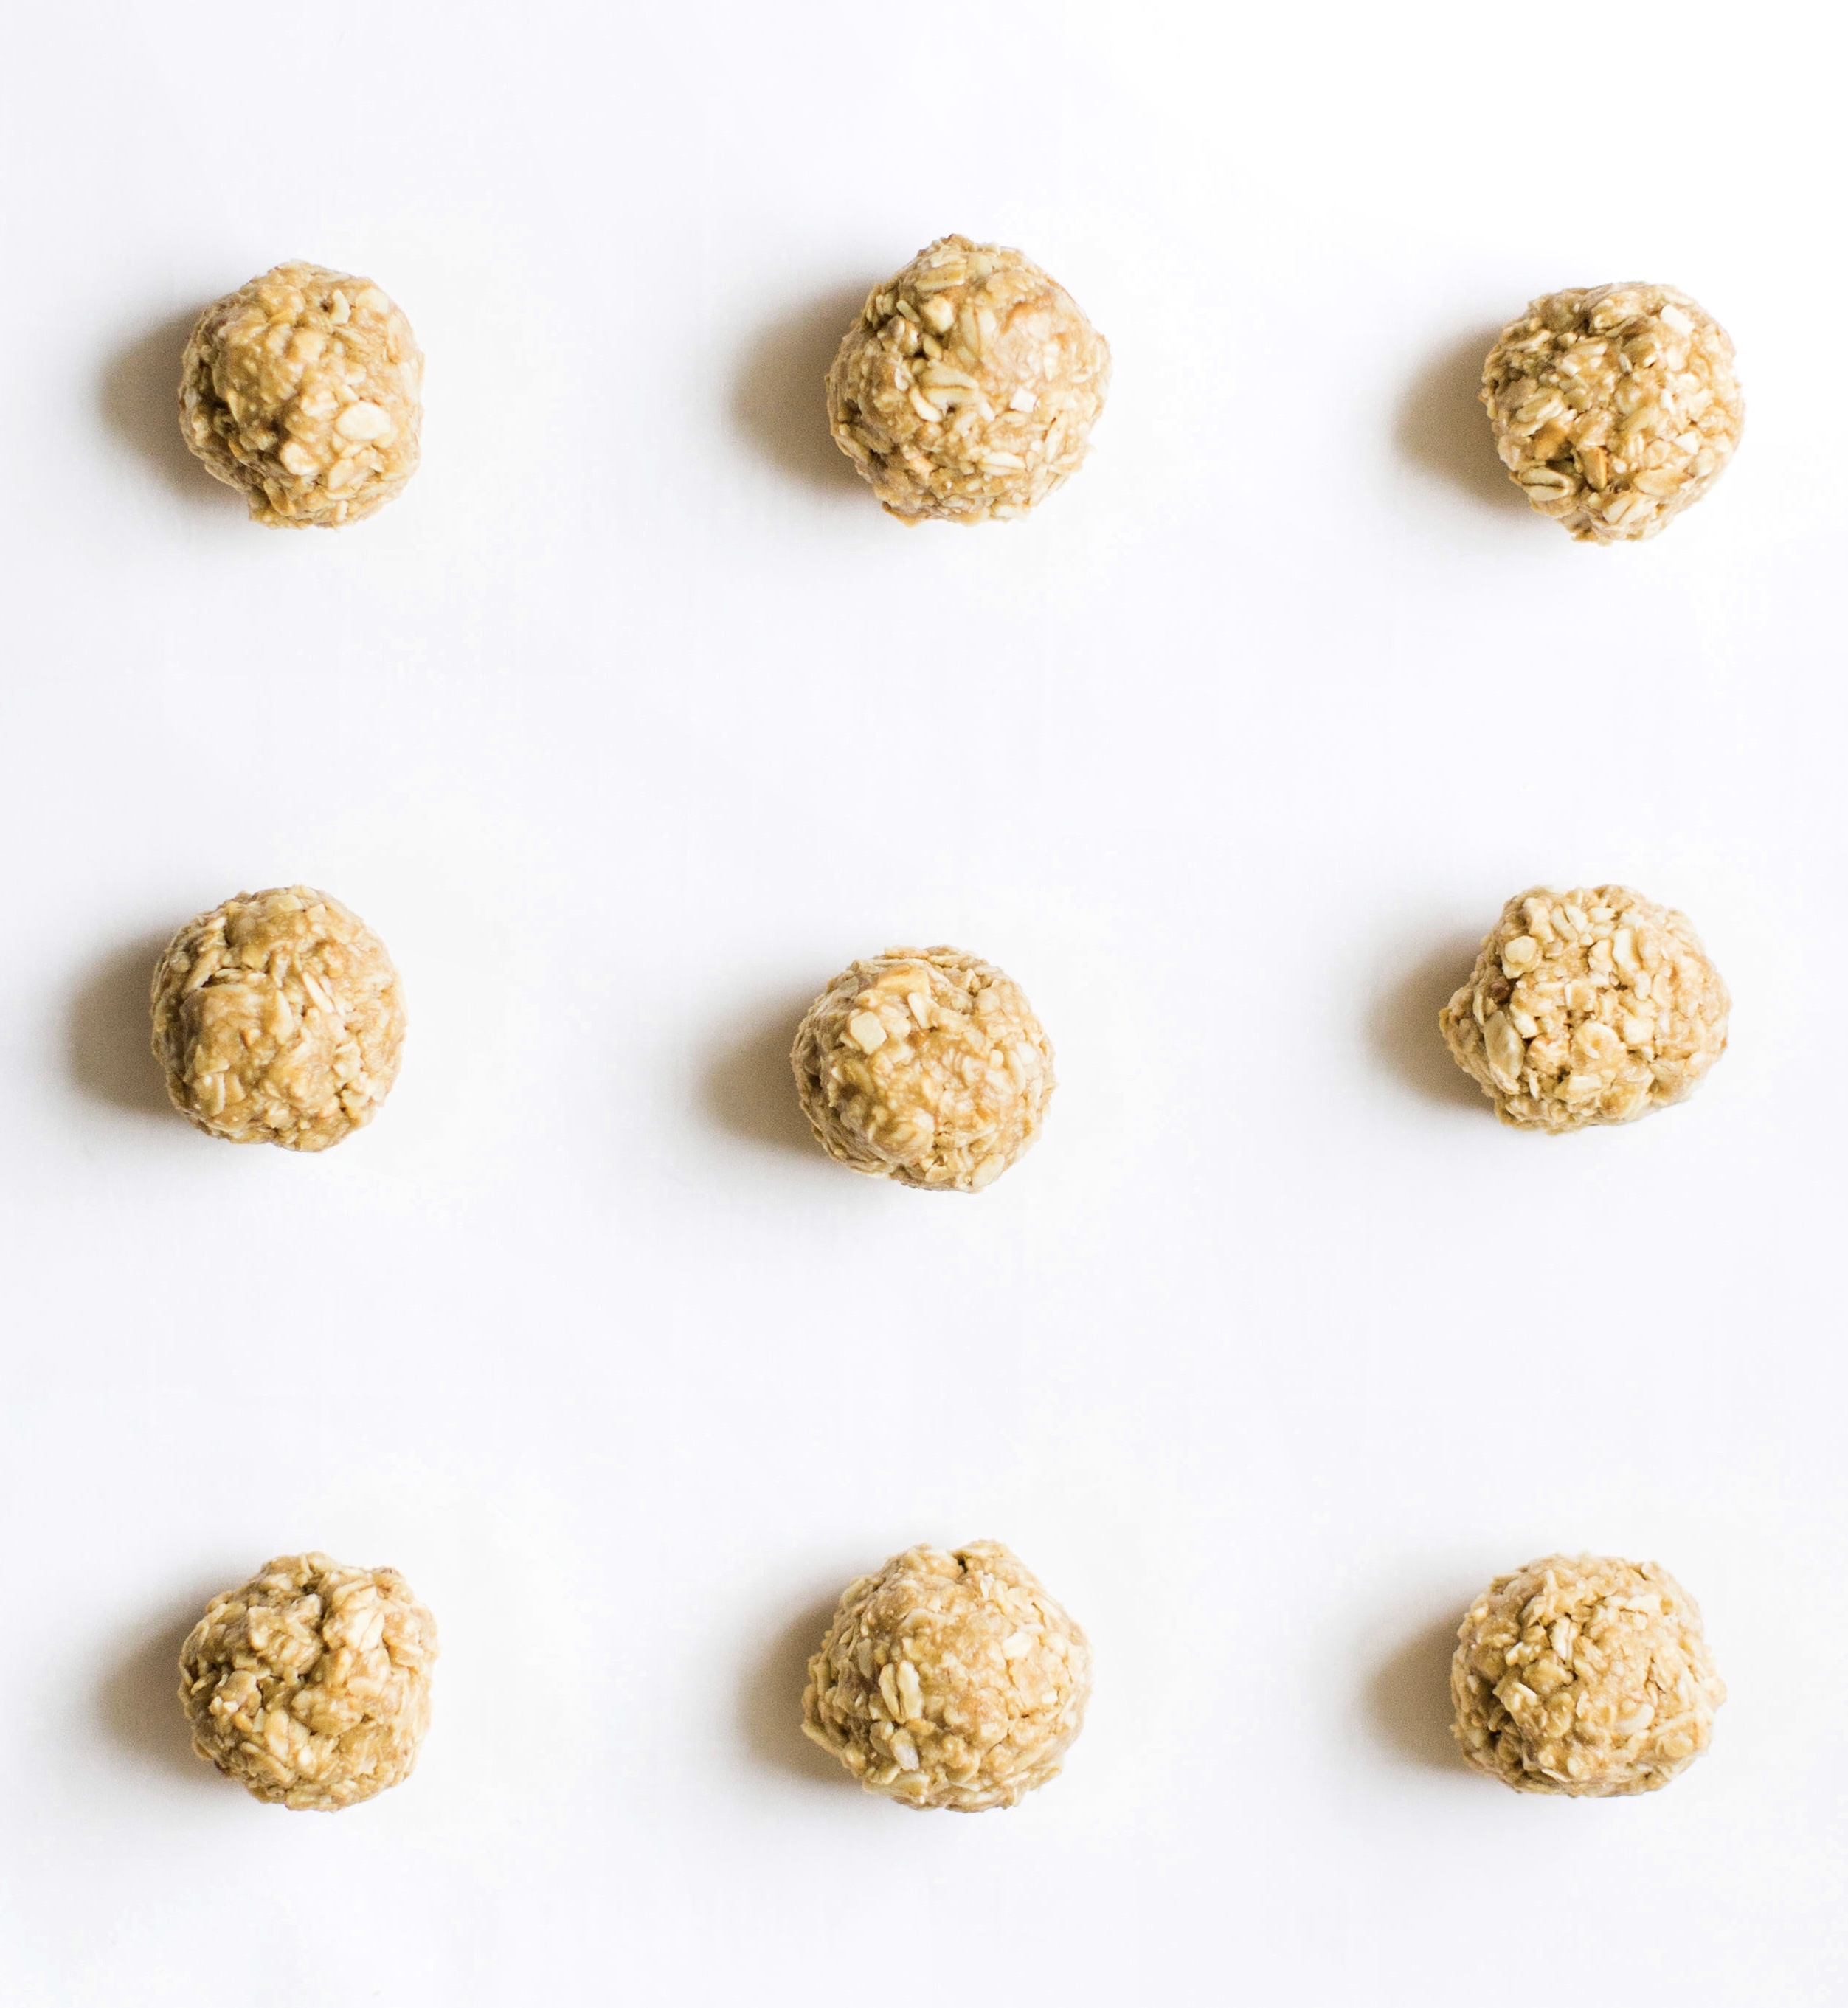 These no-bake energy bites are easy to make, the perfect combination of sweet and salty, have plenty of added protein thanks to the peanut butter, and kids absolutely love them because they're basically delicious no-bake cookies! Click through for the recipe. #snack #energybites #nobake #nobakecookies #healthysnack #kidssnack | glitterinc.com | @glitterinc